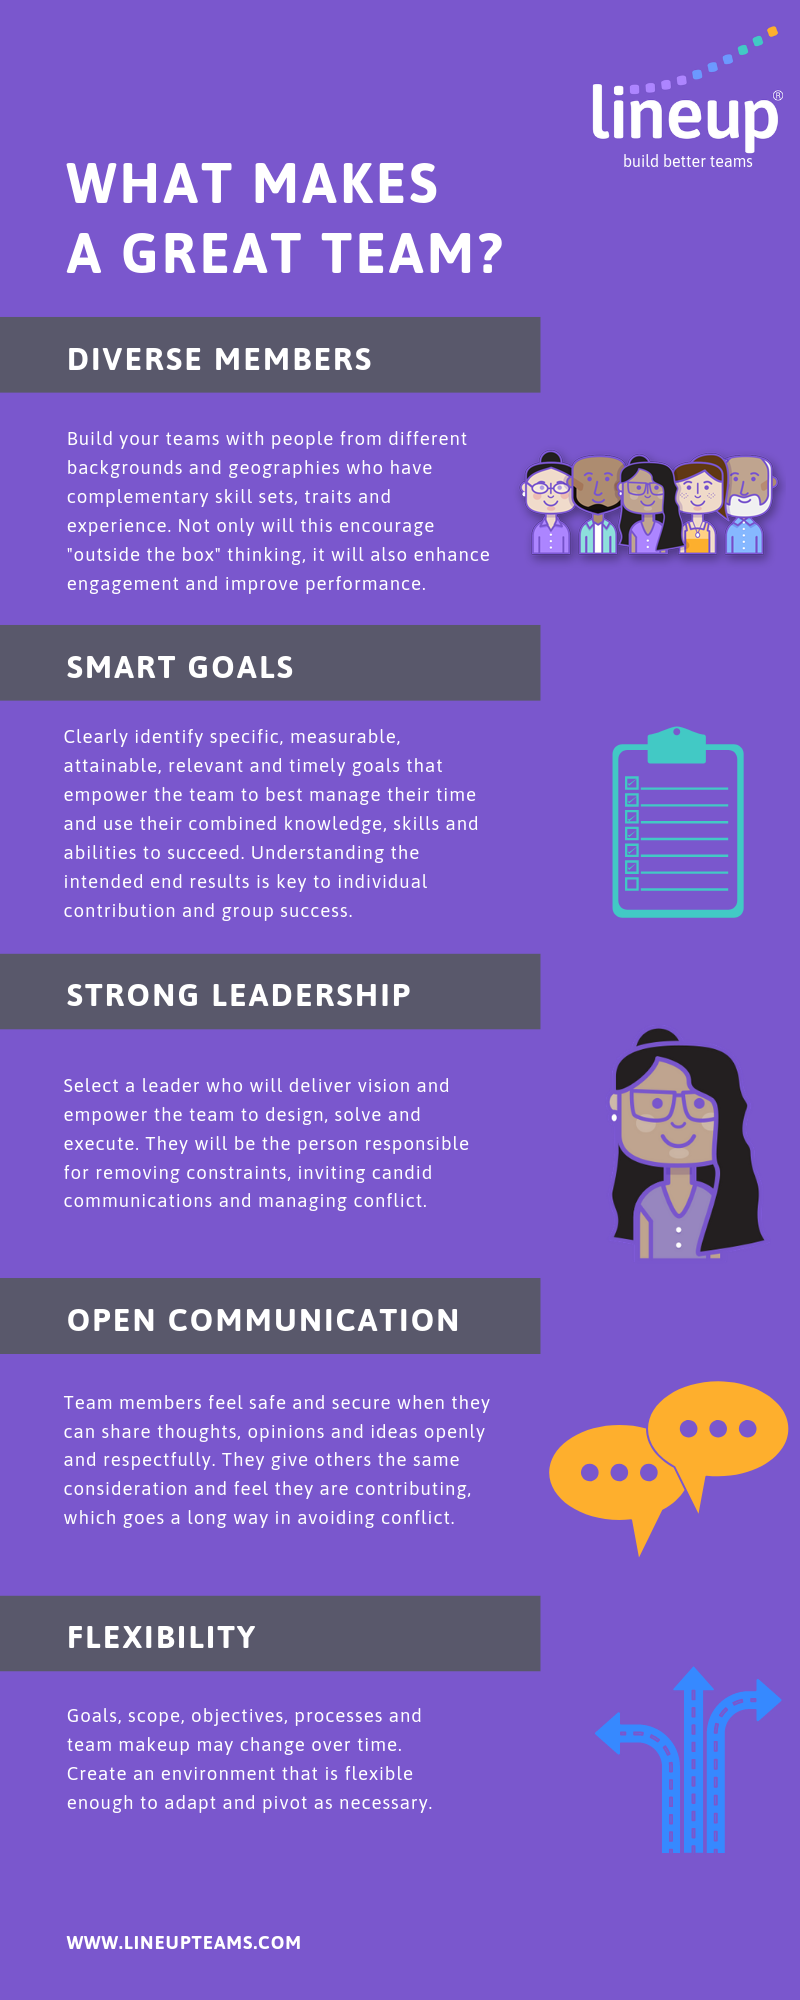 What Makes a Great Team Infographic FINAL FOR POSTING 05212019.png